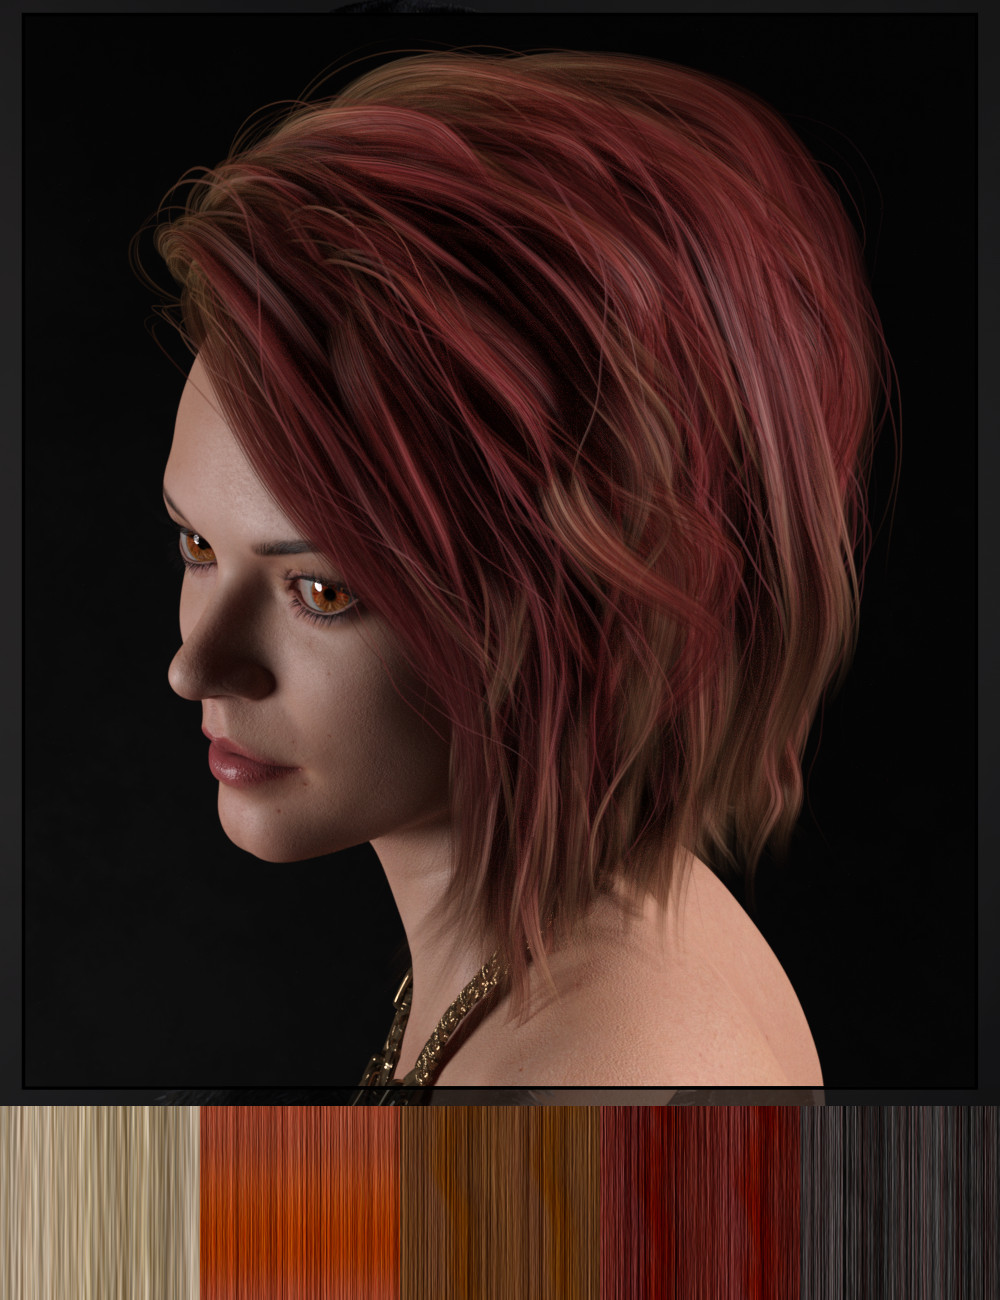 DG Iray 200 Hair Color Shaders and Merchant Resource by: IDG DesignsDestinysGarden, 3D Models by Daz 3D